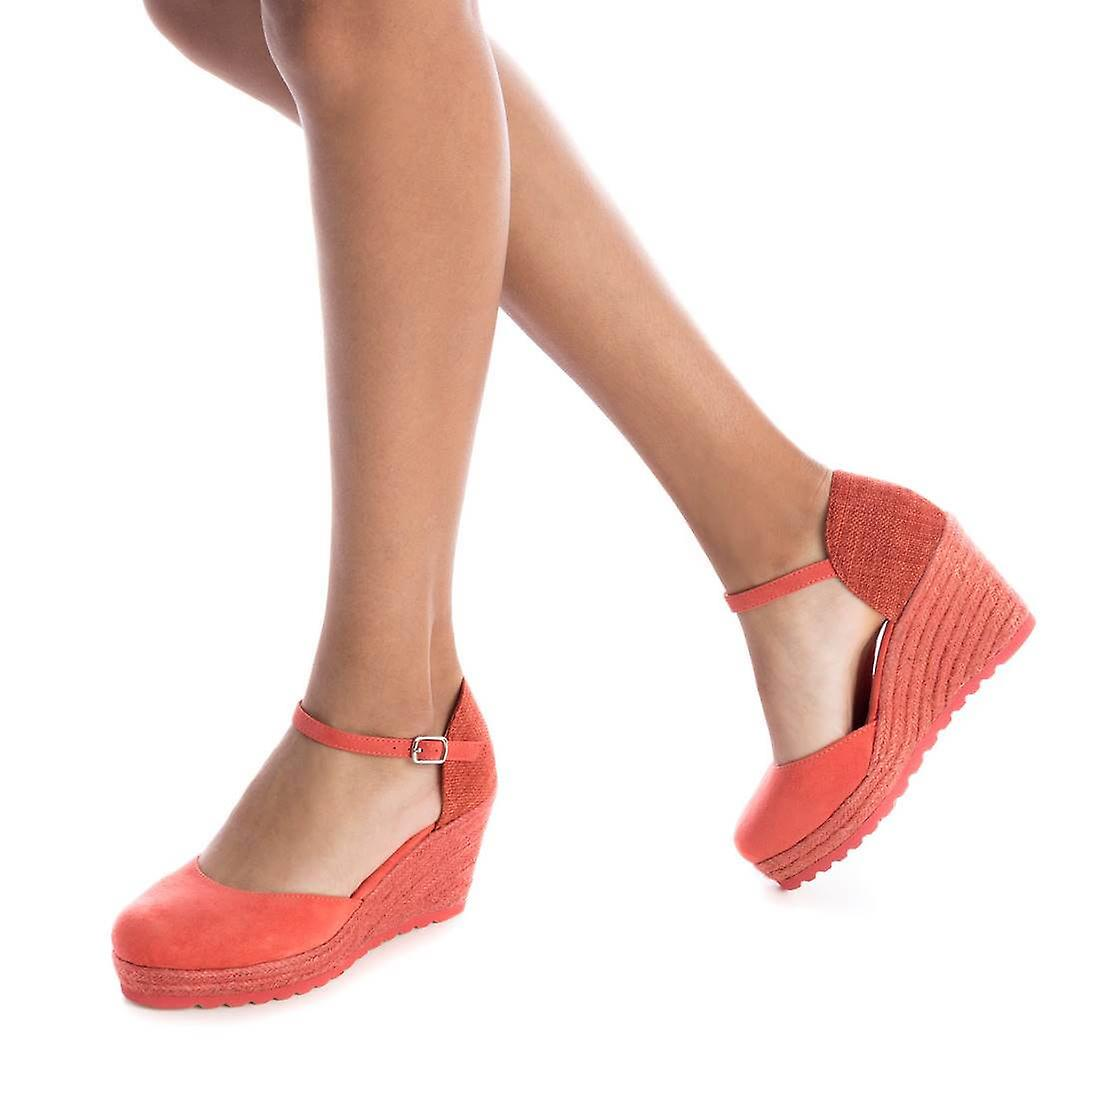 Xti Original Women Spring/summer Wedge - Red Color 40213